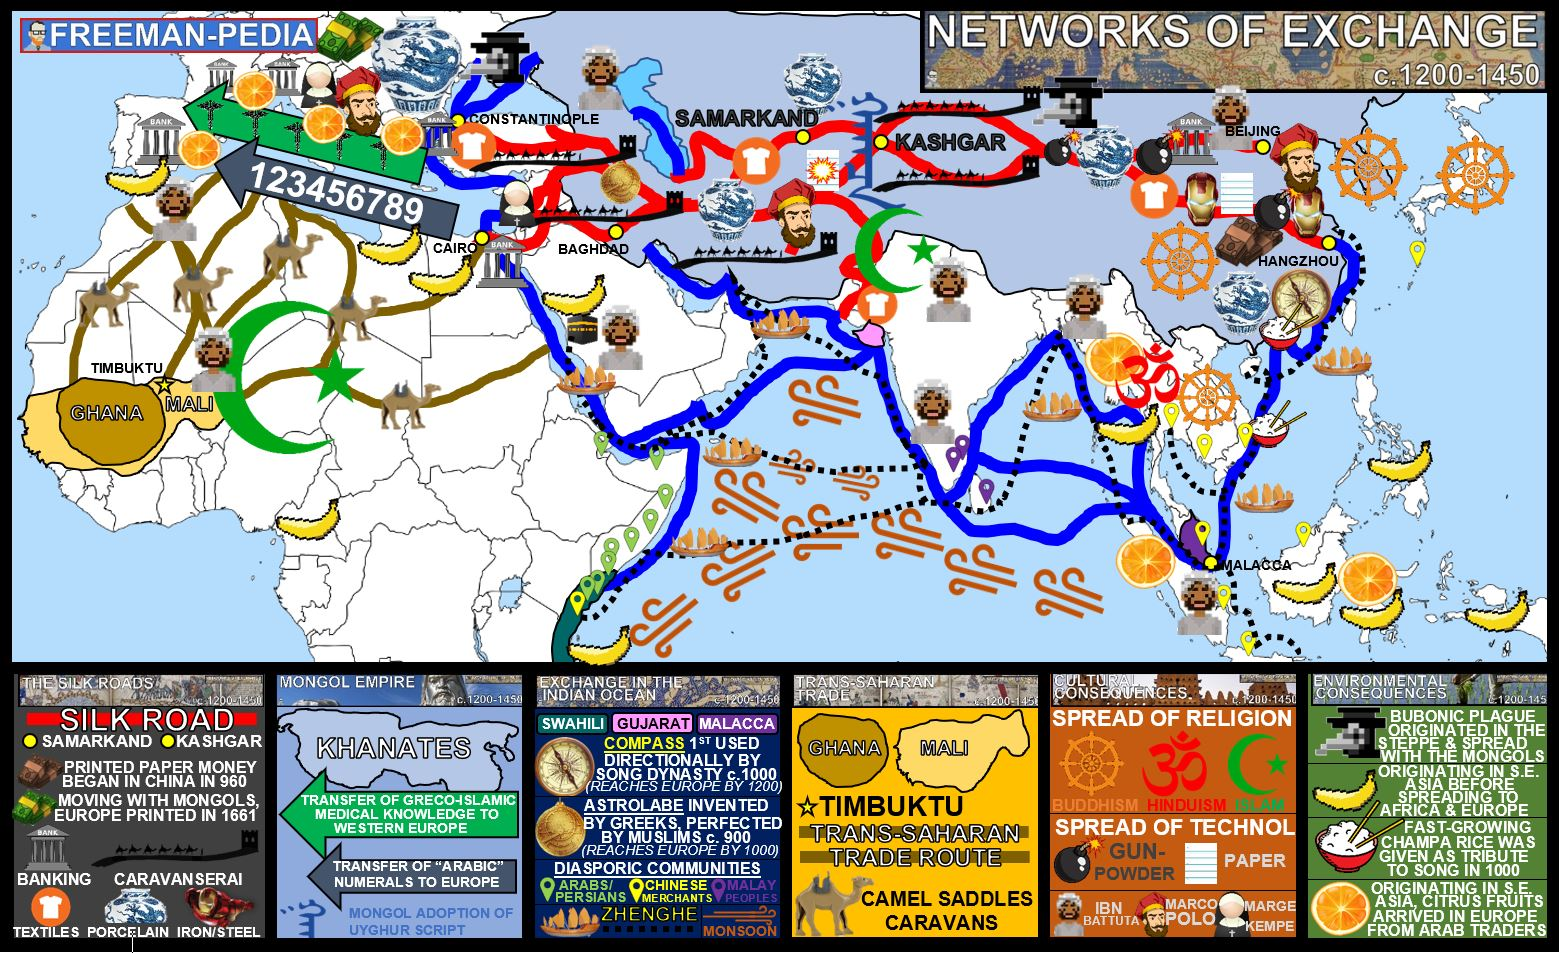 NETWORKS OF EXCHANGE MAP AP WORLD HISTORY MODERN FREEMANPEDIA.JPG